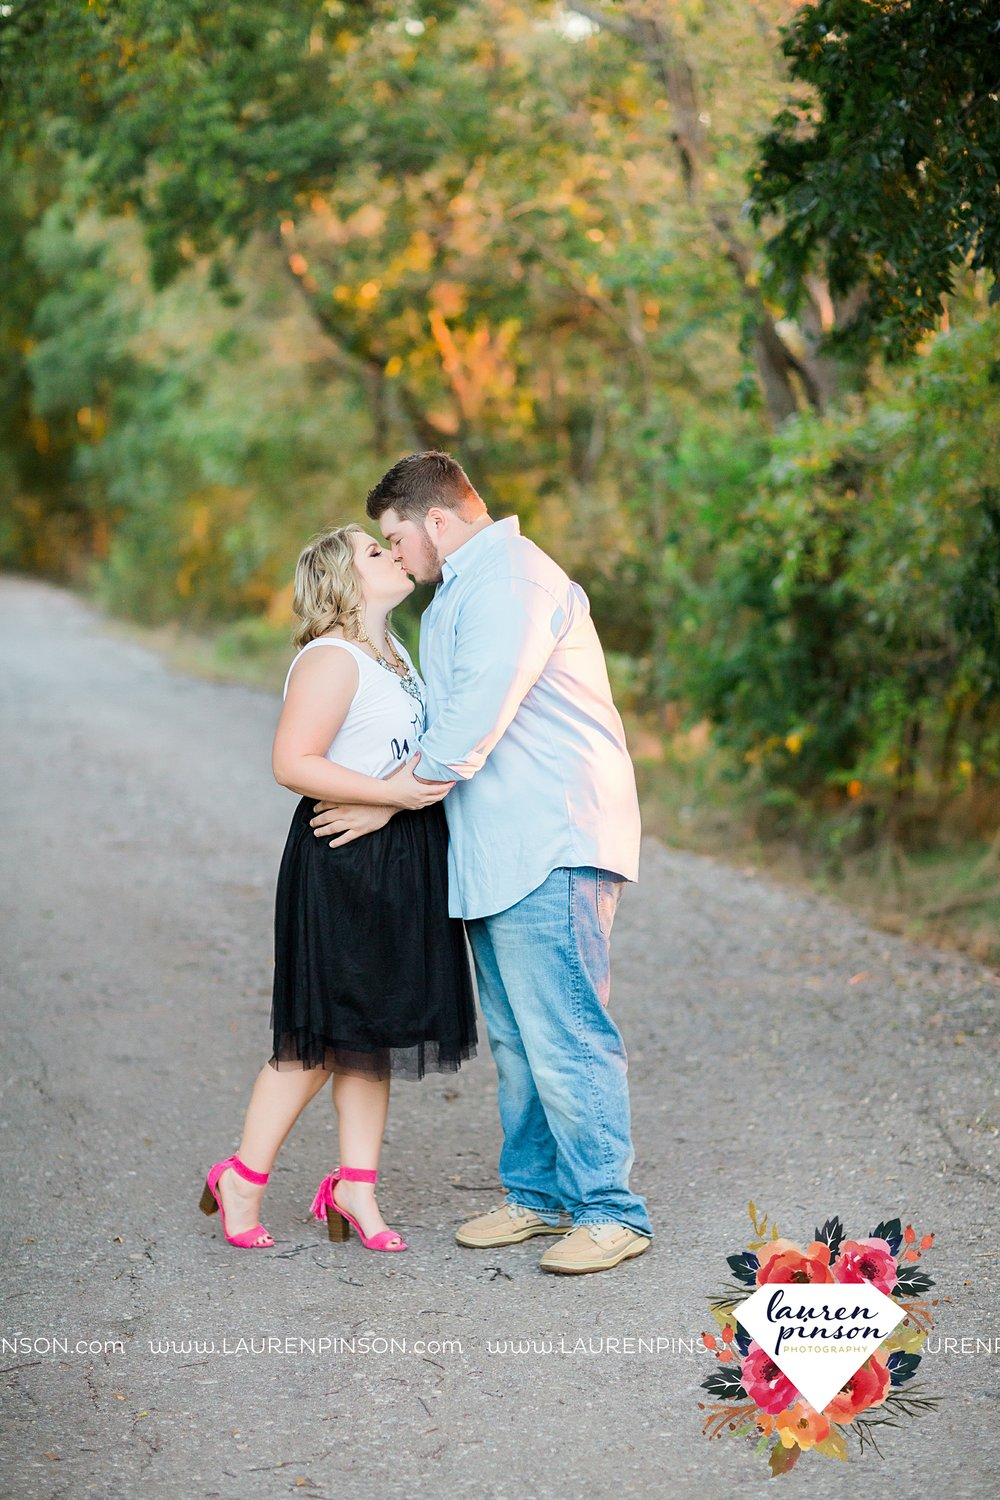 wichita-falls-engagement-and-wedding-photographer-lauren-pinson-photography_3651.jpg